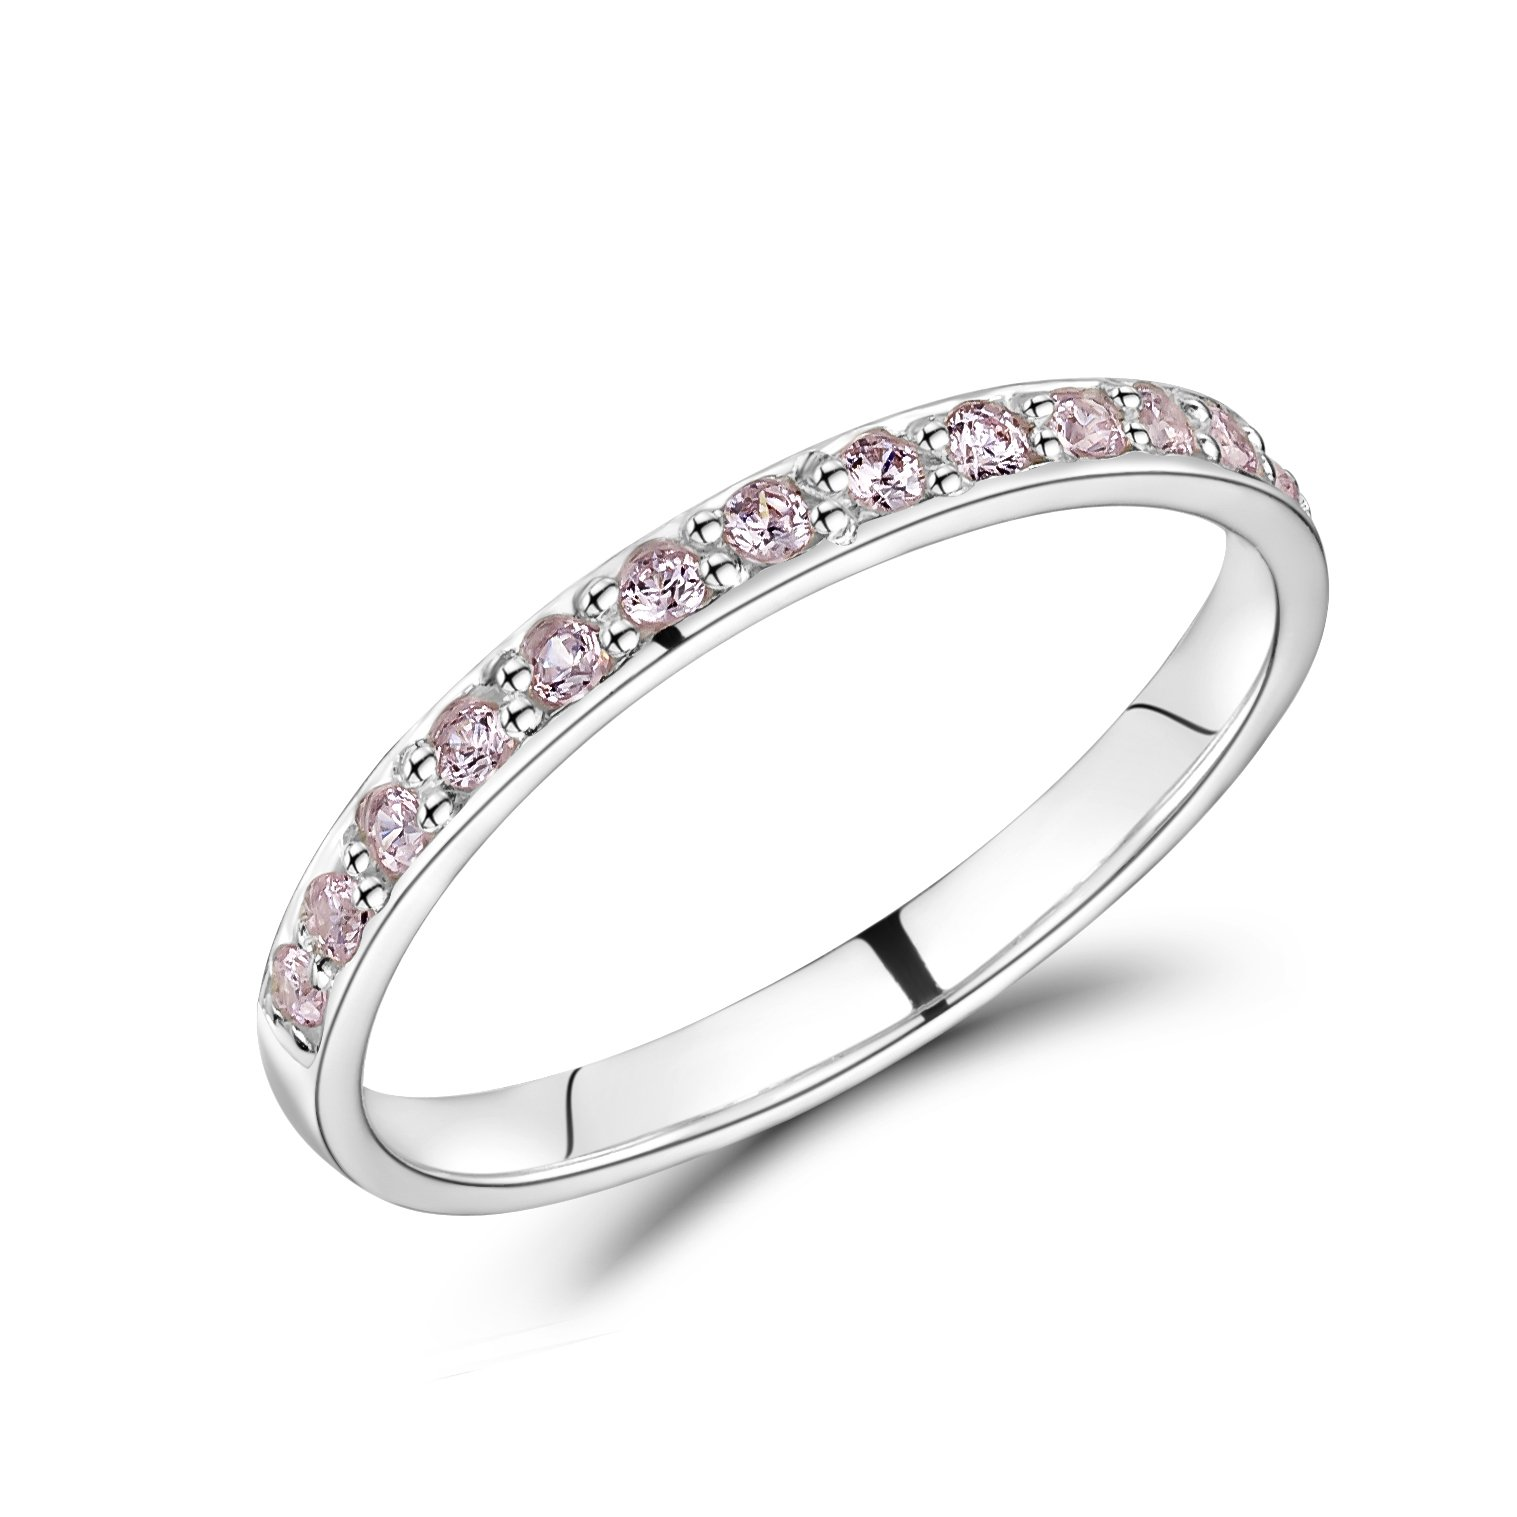 Jo for Girls Sterling Silver Eternity Ring with 15 Pink Cubic Zirconia Stones – Size G